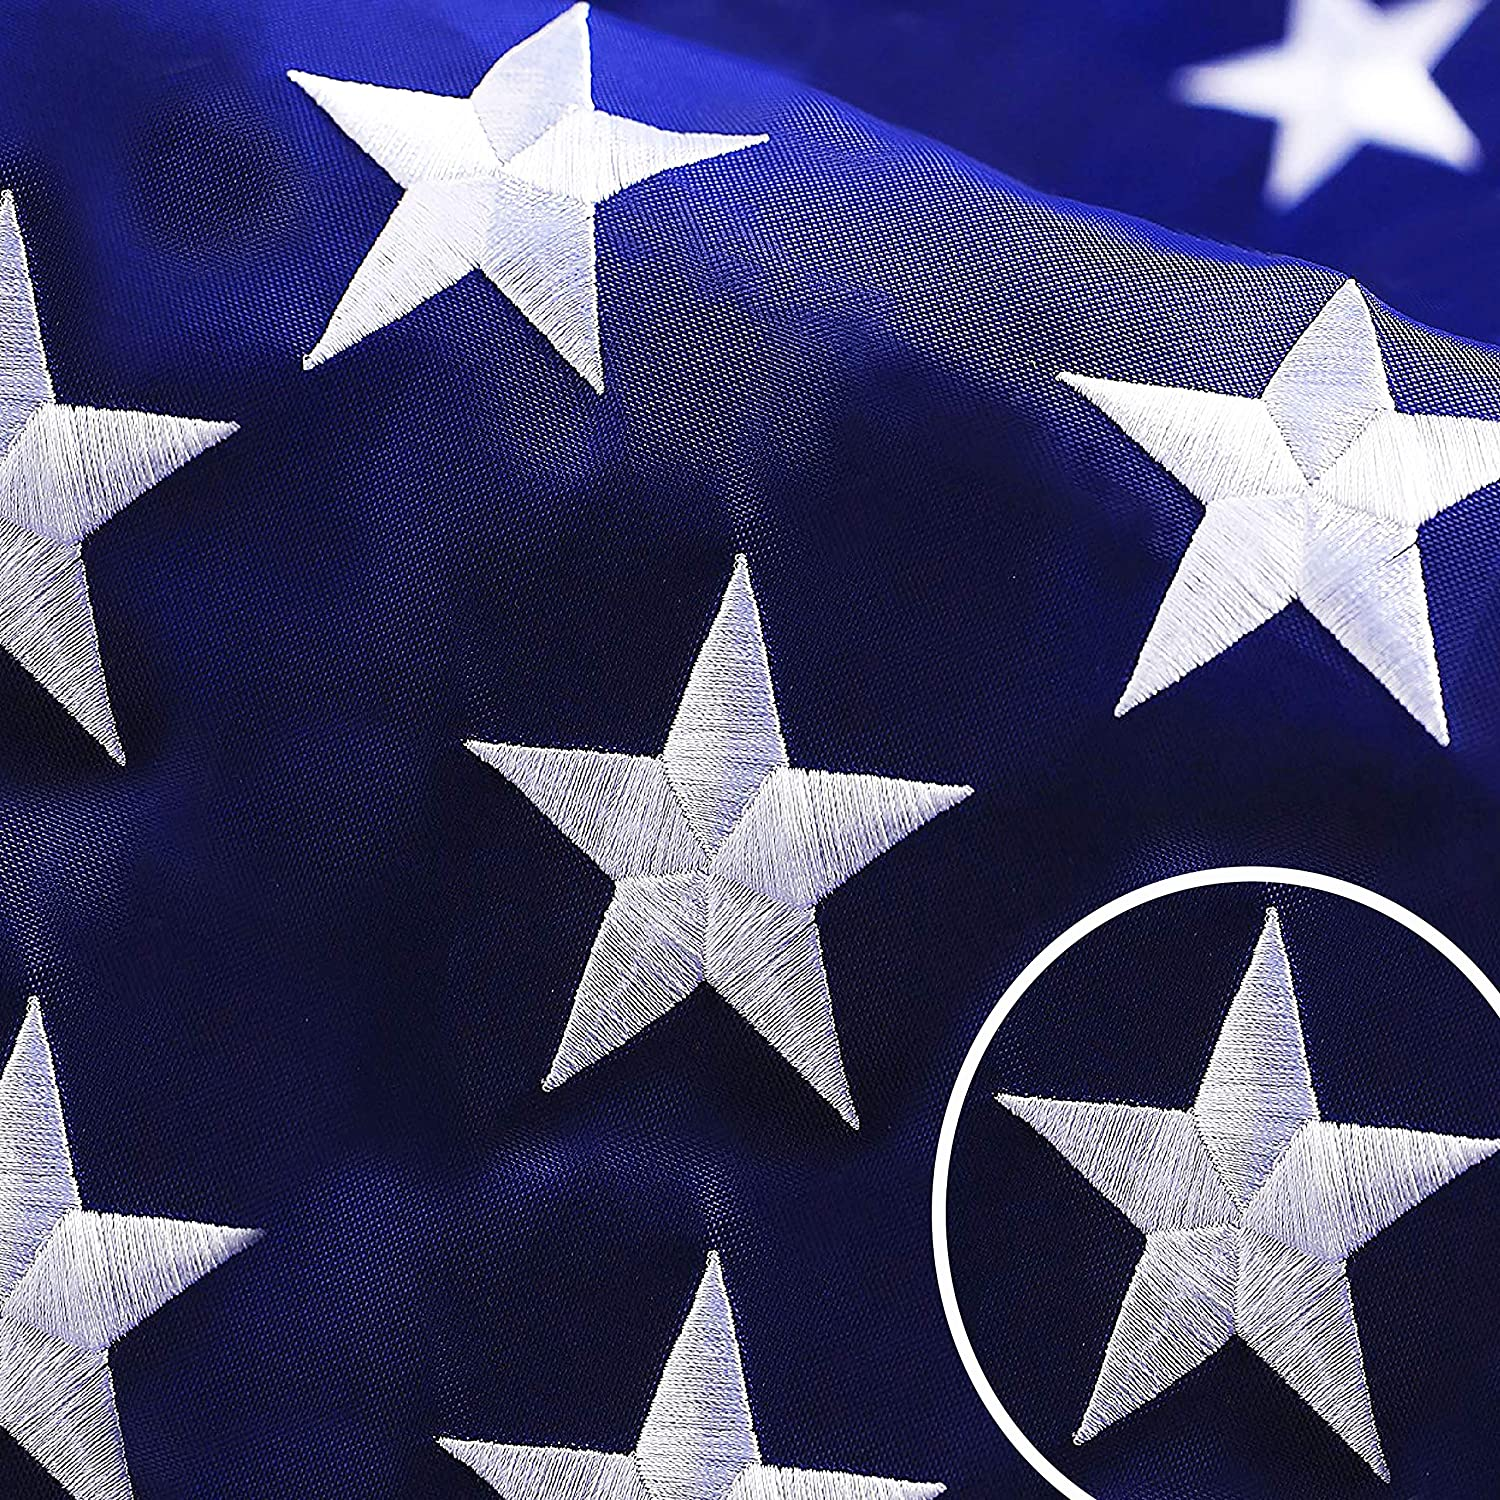 G128 - American USA US Flag 10x15 ft Deluxe Embroidered Stars Sewn Stripes Brass Grommets Durable Indoor Outdoor Use